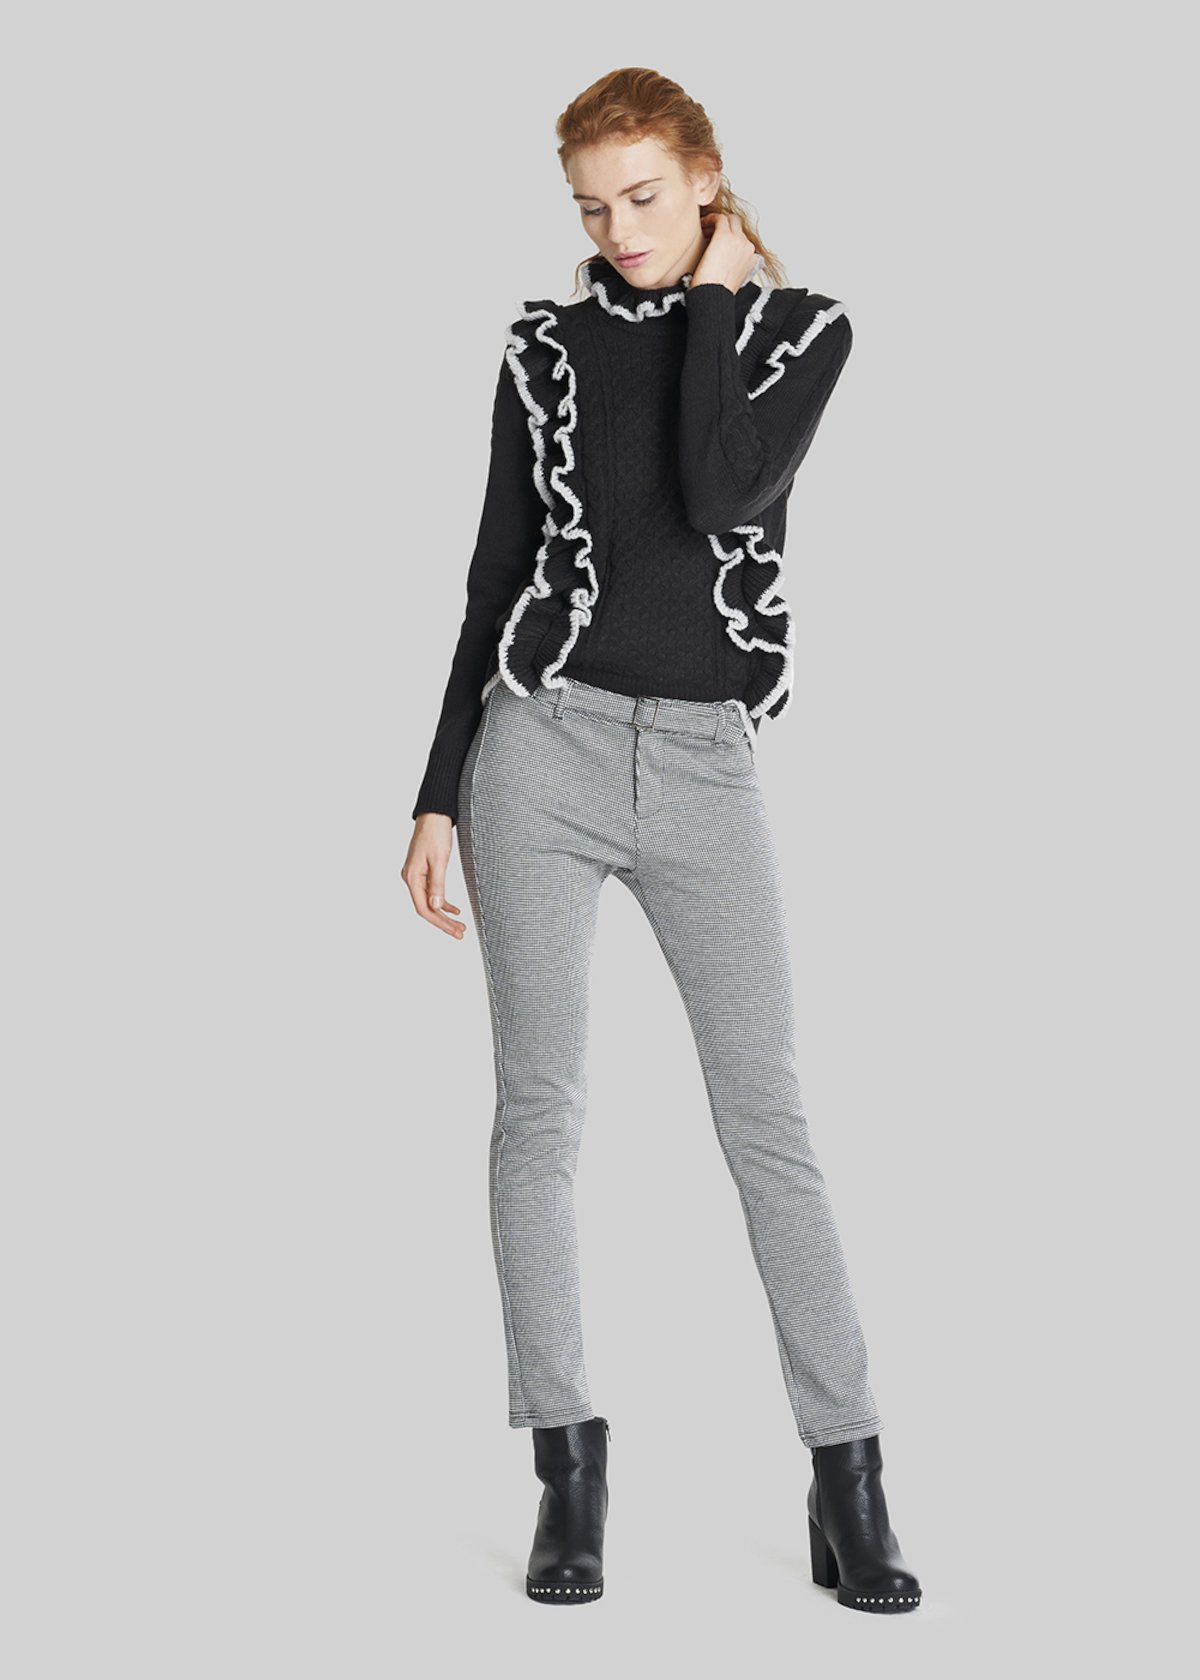 Marshall sweater with high neck and bicolour ruffles - Black / Mousse